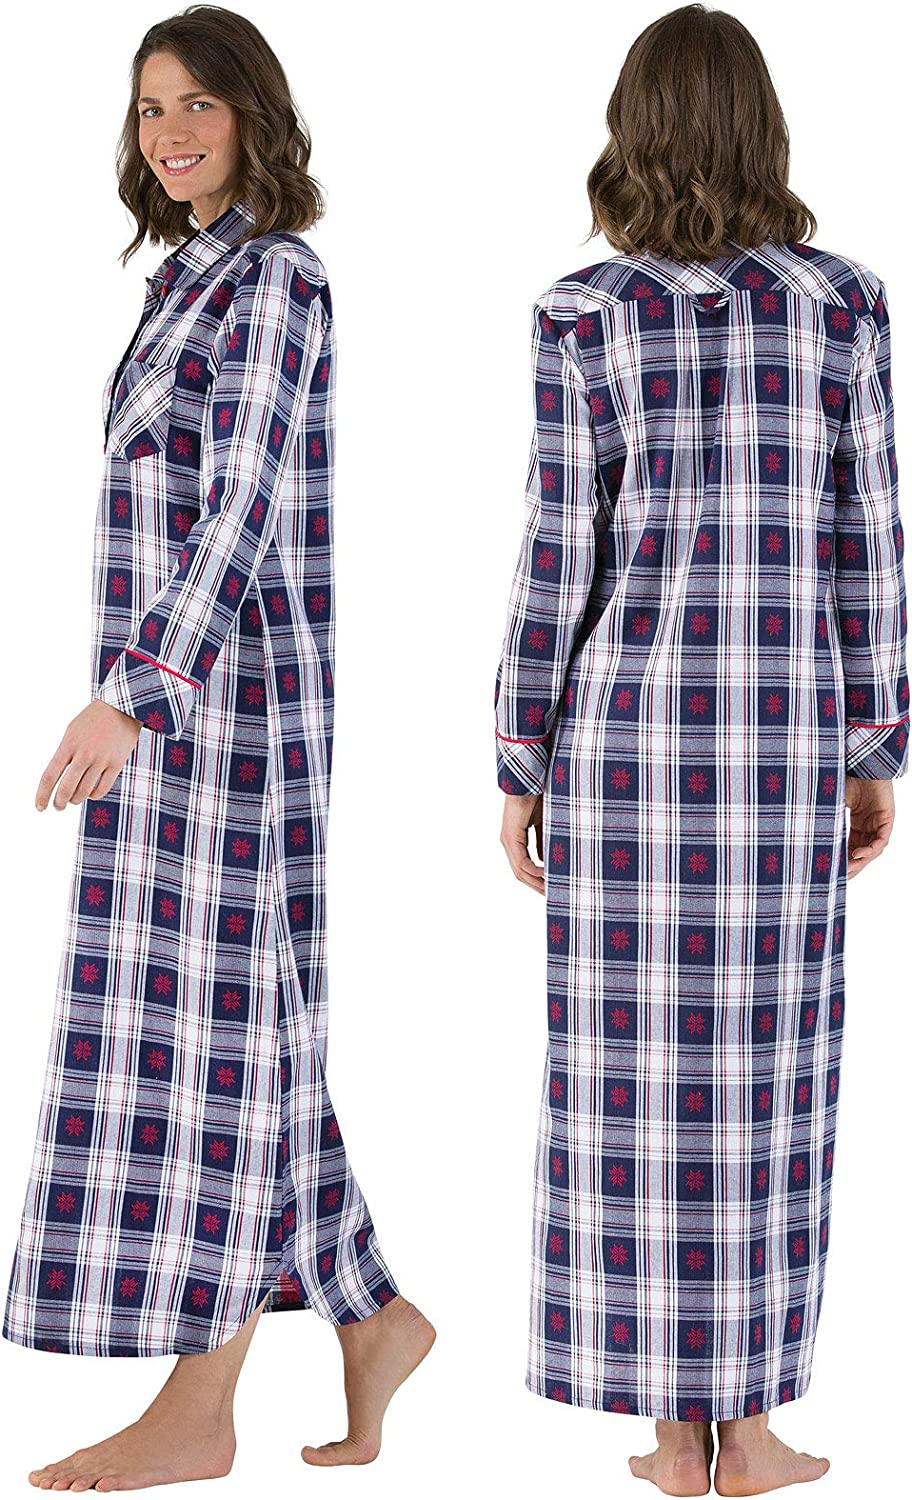 Cotton Flannel Nightgown Womens PajamaGram Womens Flannel Nightgown Plaid